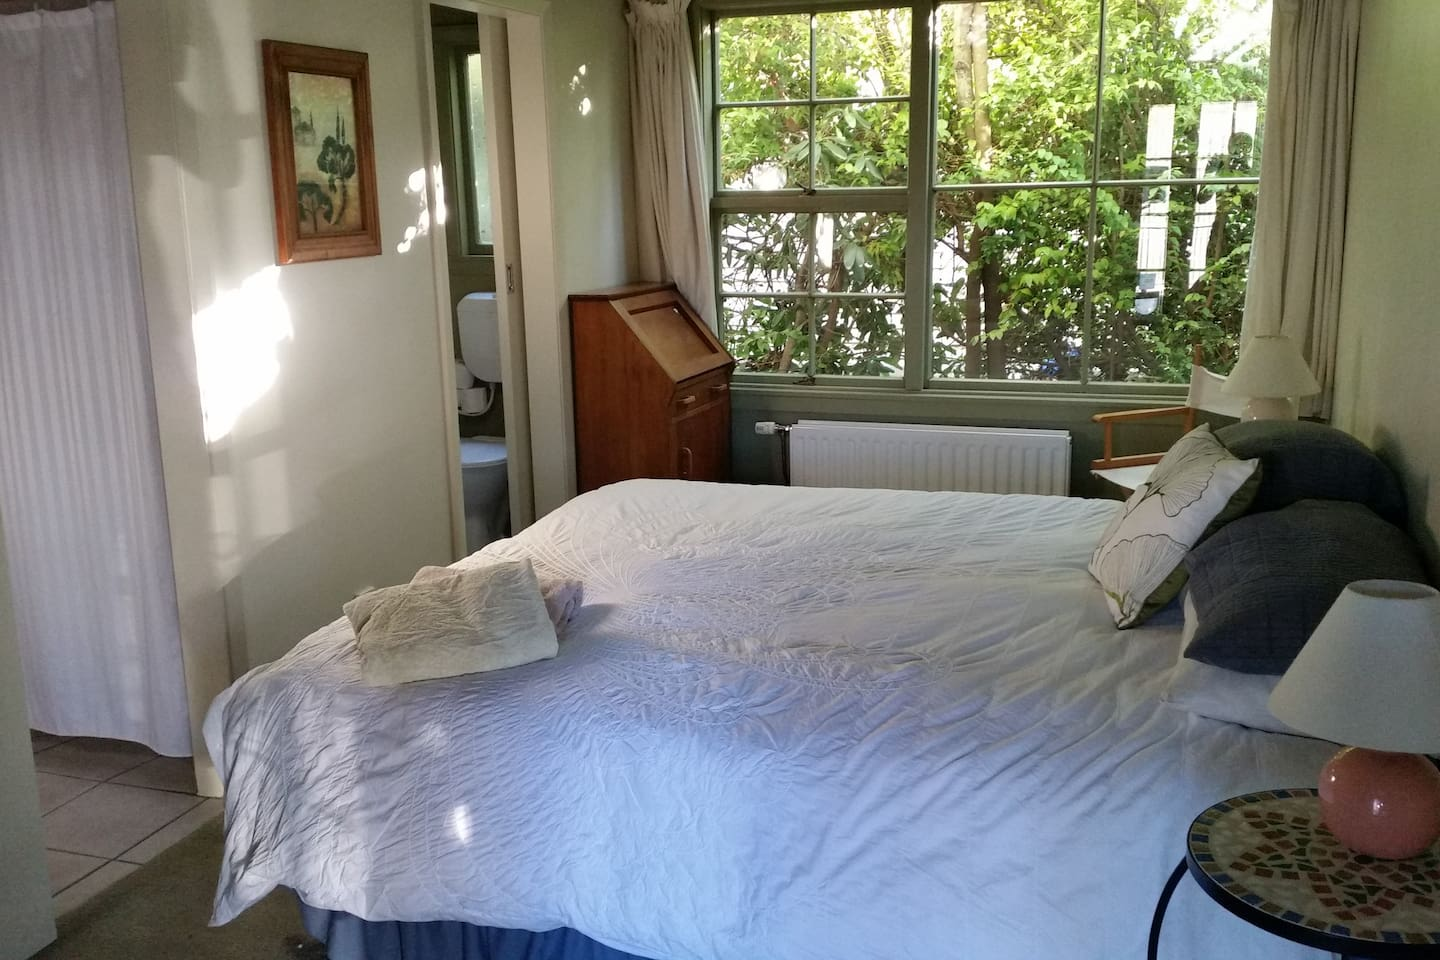 MT COOK ROOM - King size bed with en-suite.  Ability to make this room a twin if needed.